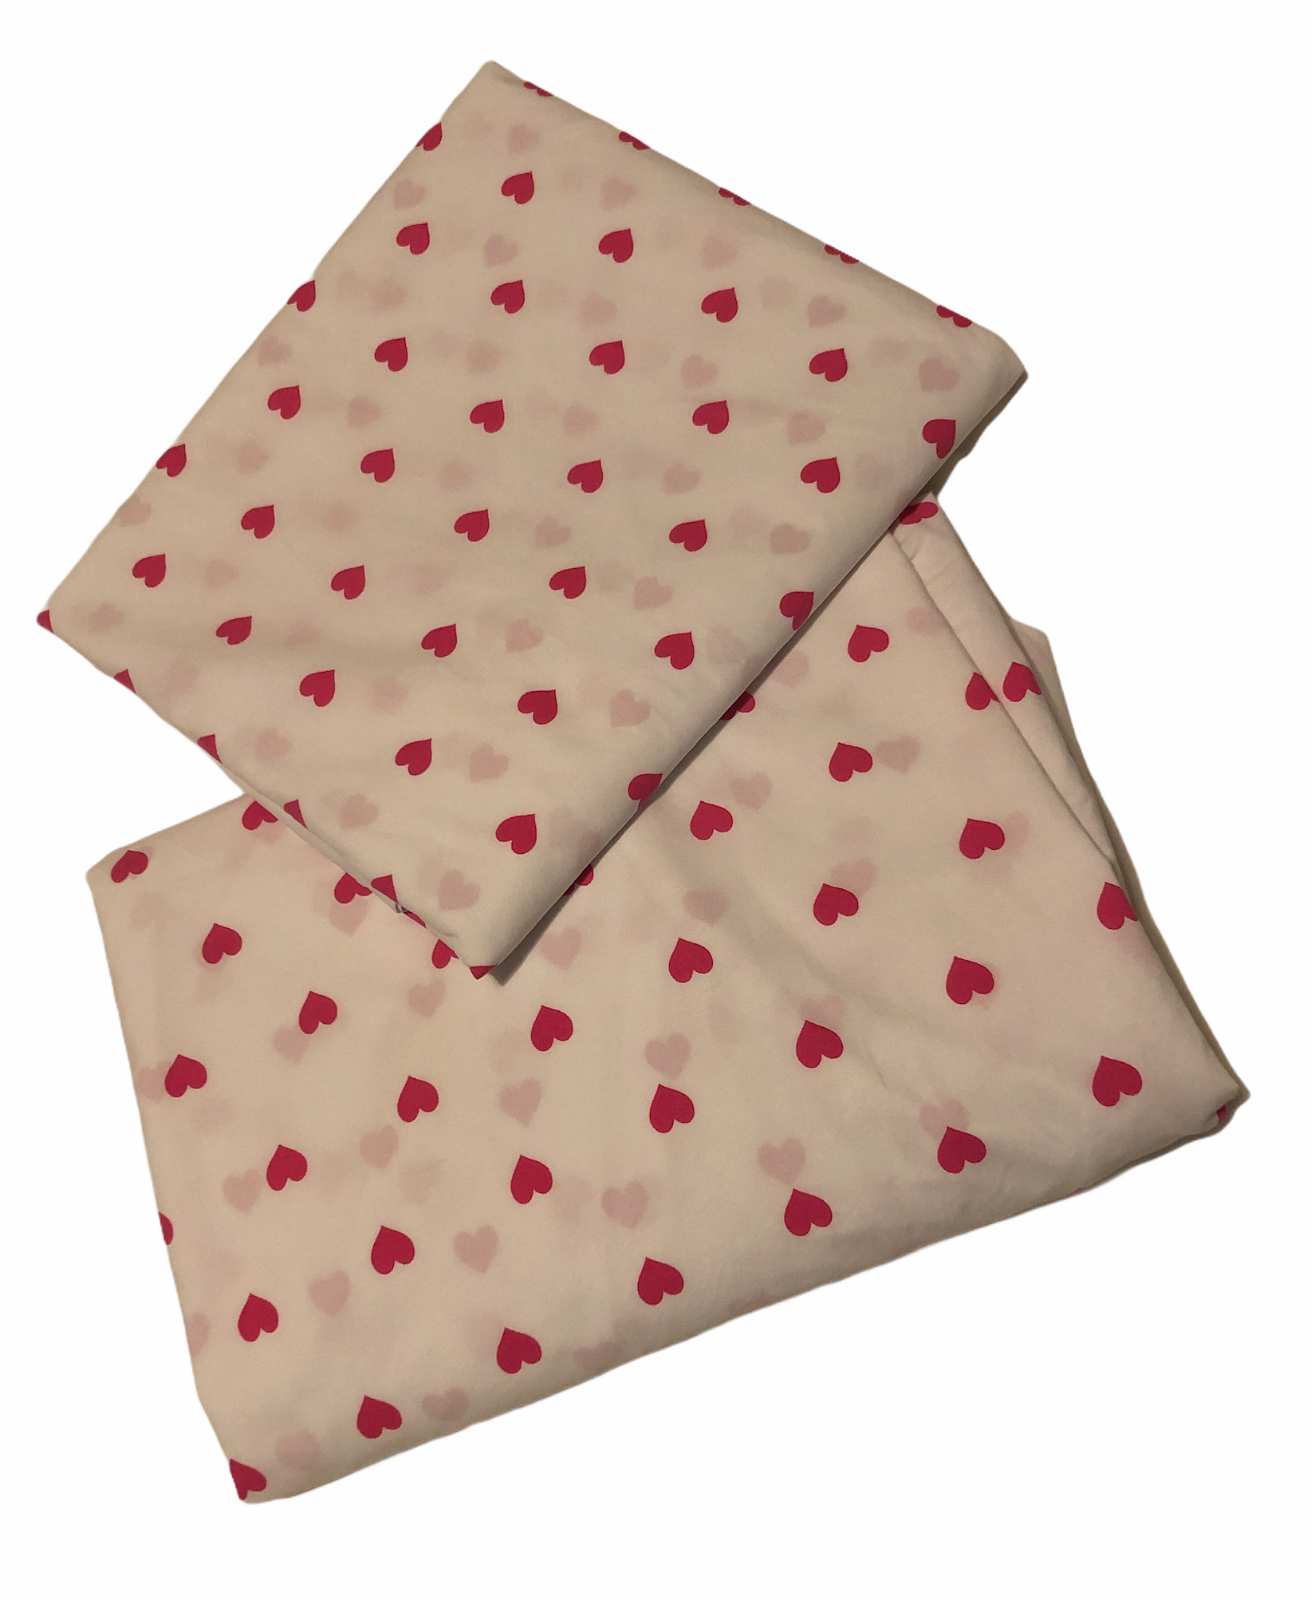 Pottery Barn Kids Heart Sheets Fitted/Flat Twin Bright Pink  - $36.69